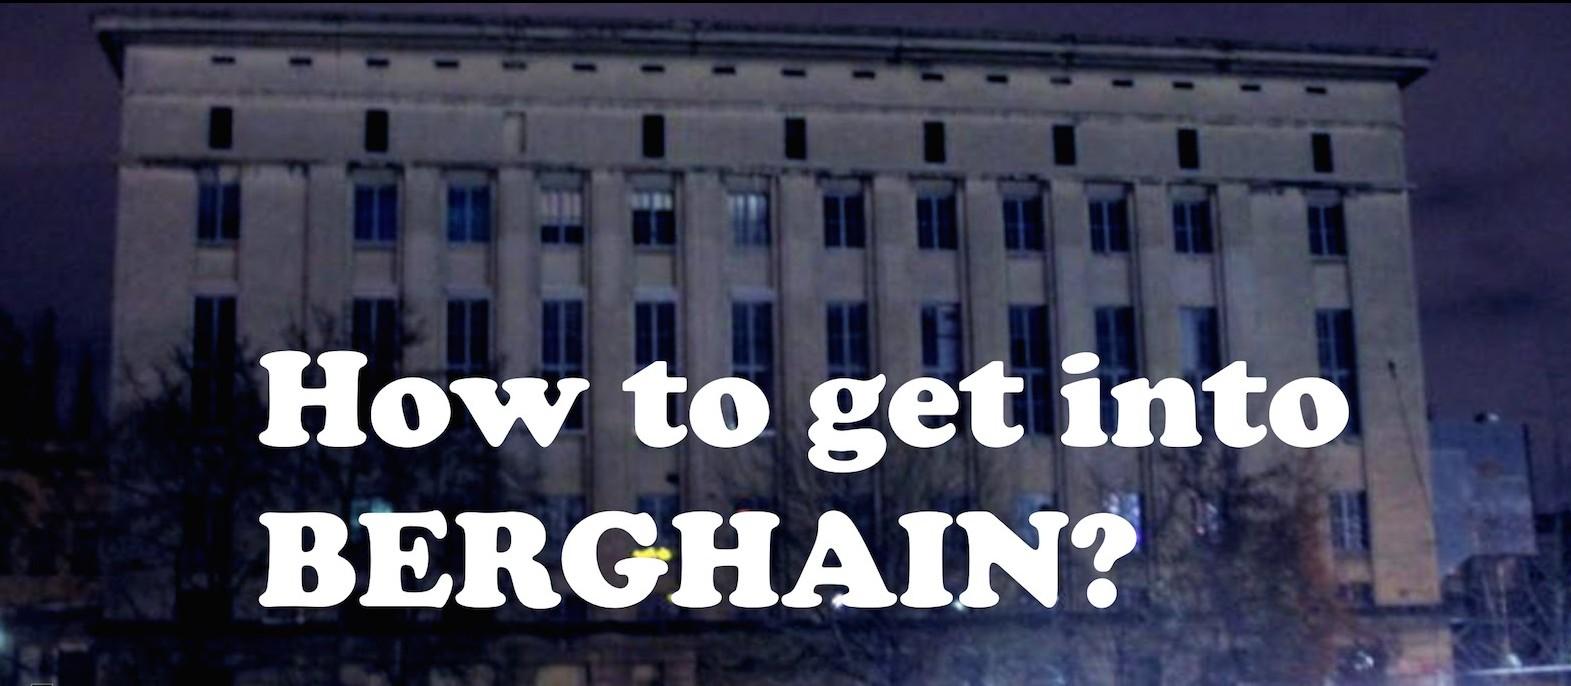 Get Into berghain